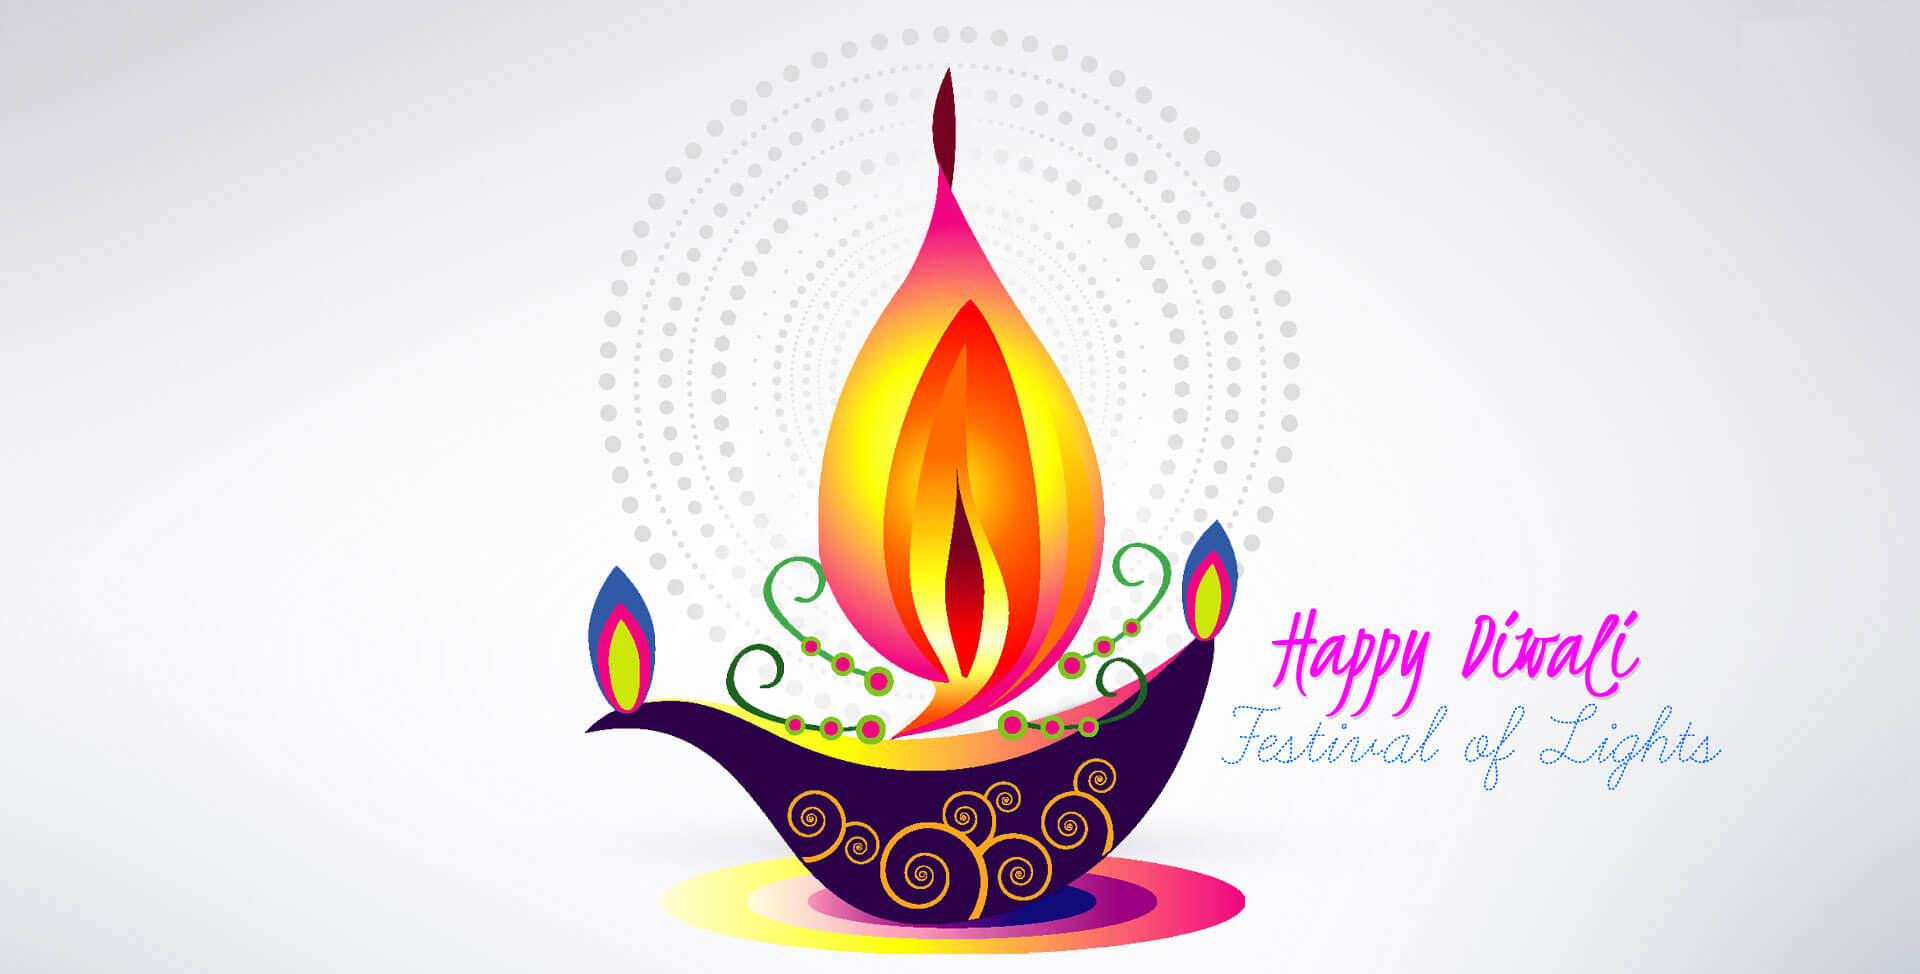 Happy Diwali with diya light greeting card wallpaper image